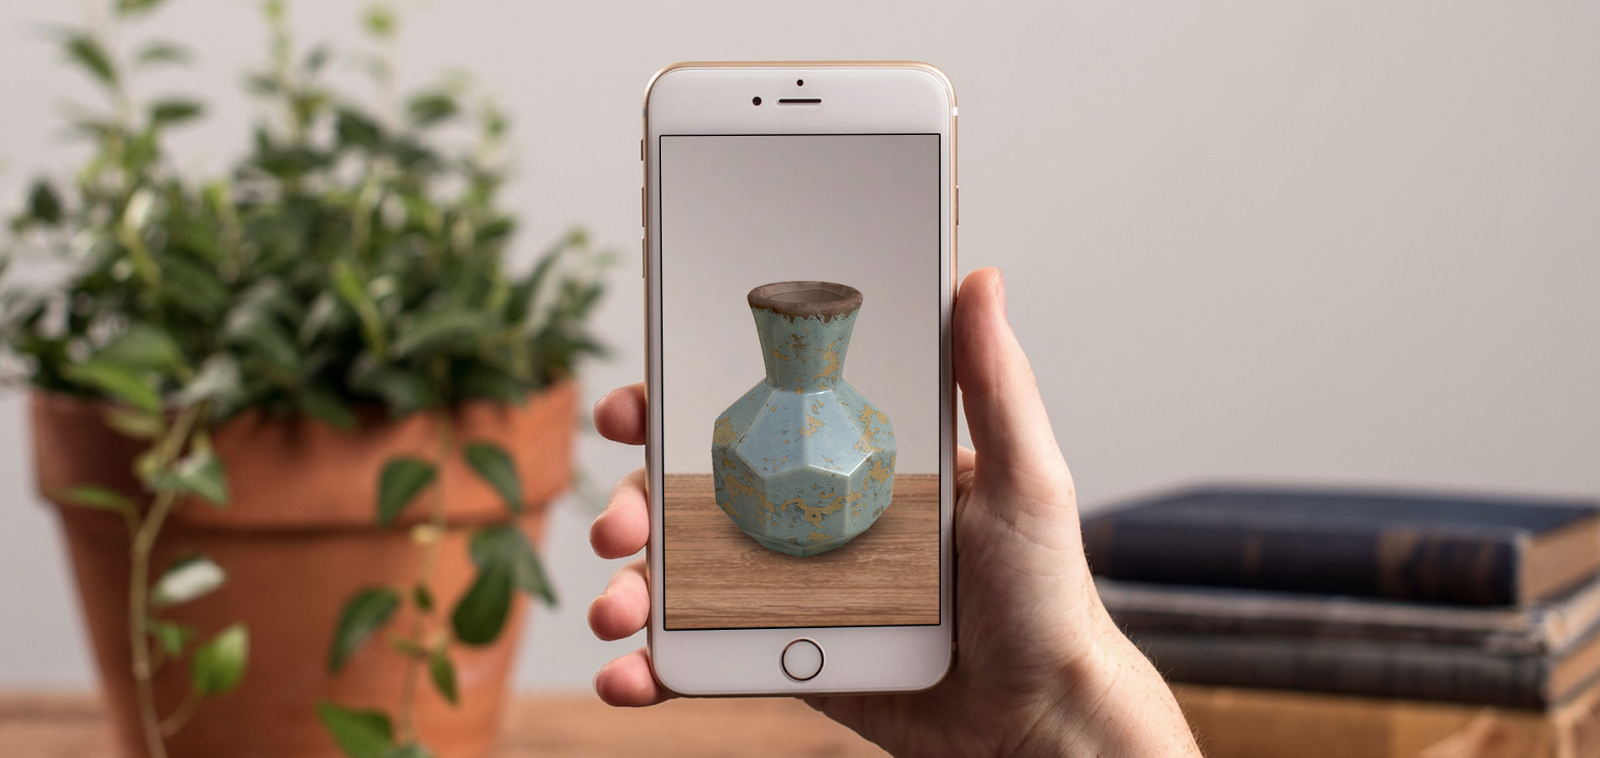 Viewing a vase in 3D